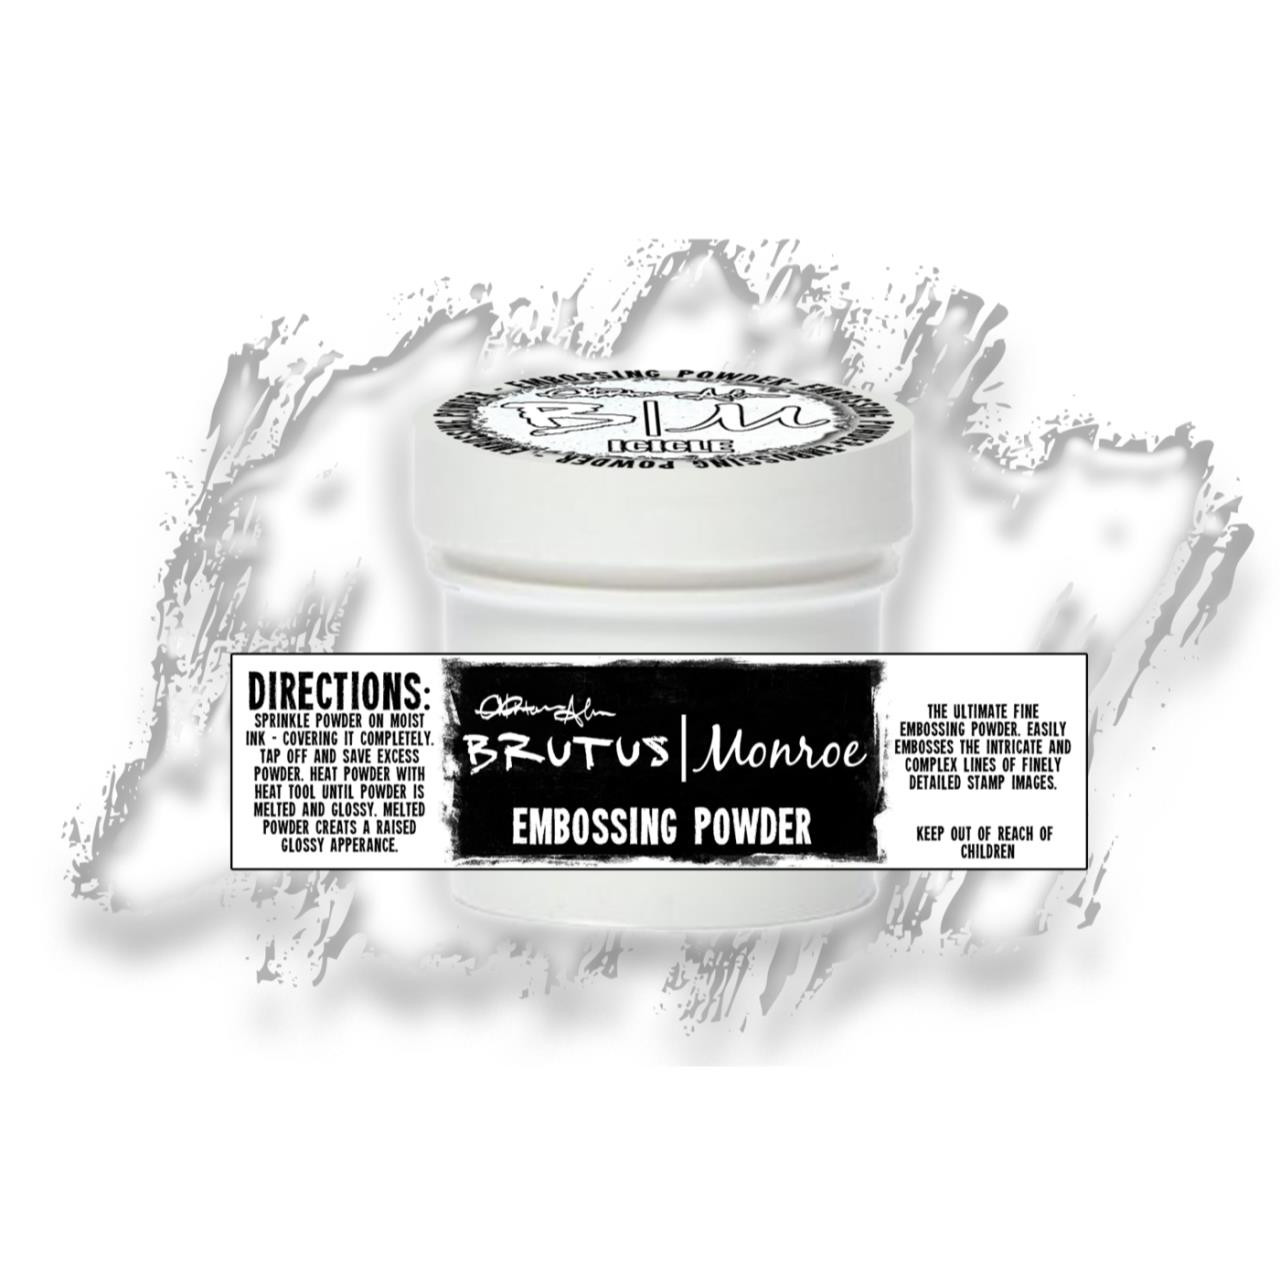 Brutus Monroe Ultra Fine Embossing Powder, Icicle -